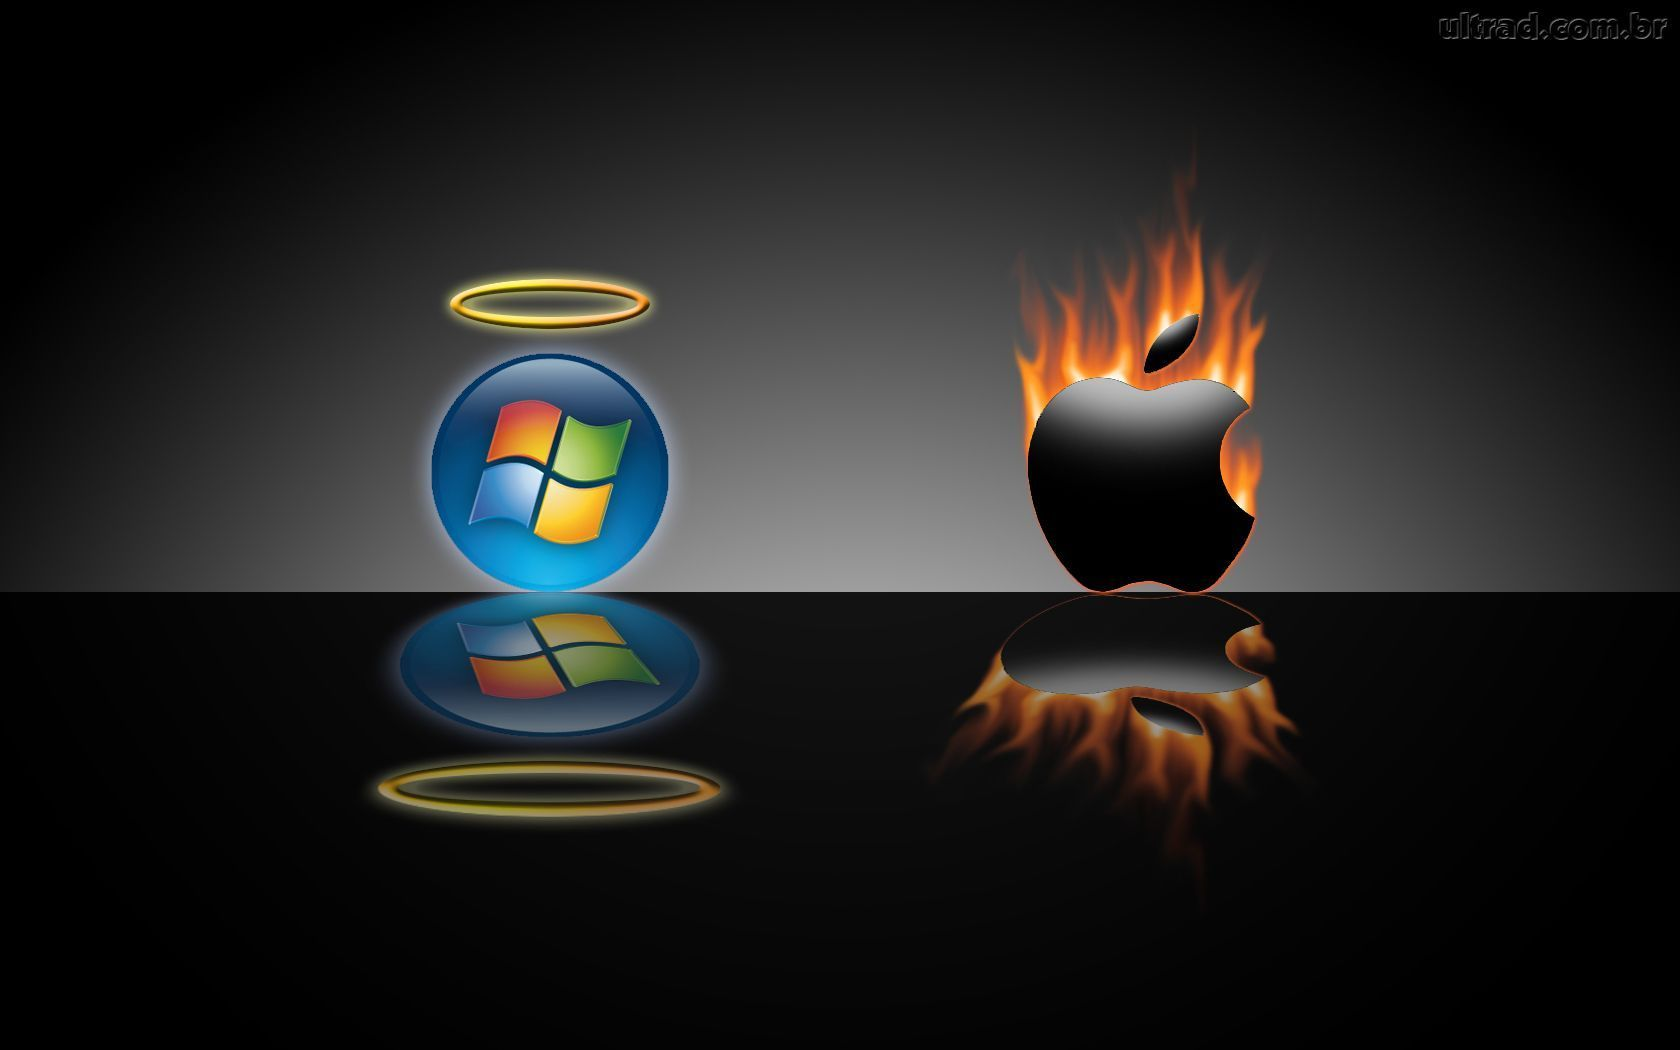 Apple Vs Microsoft Microsoft Wallpaper Mac Vs Pc Apple Wallpaper